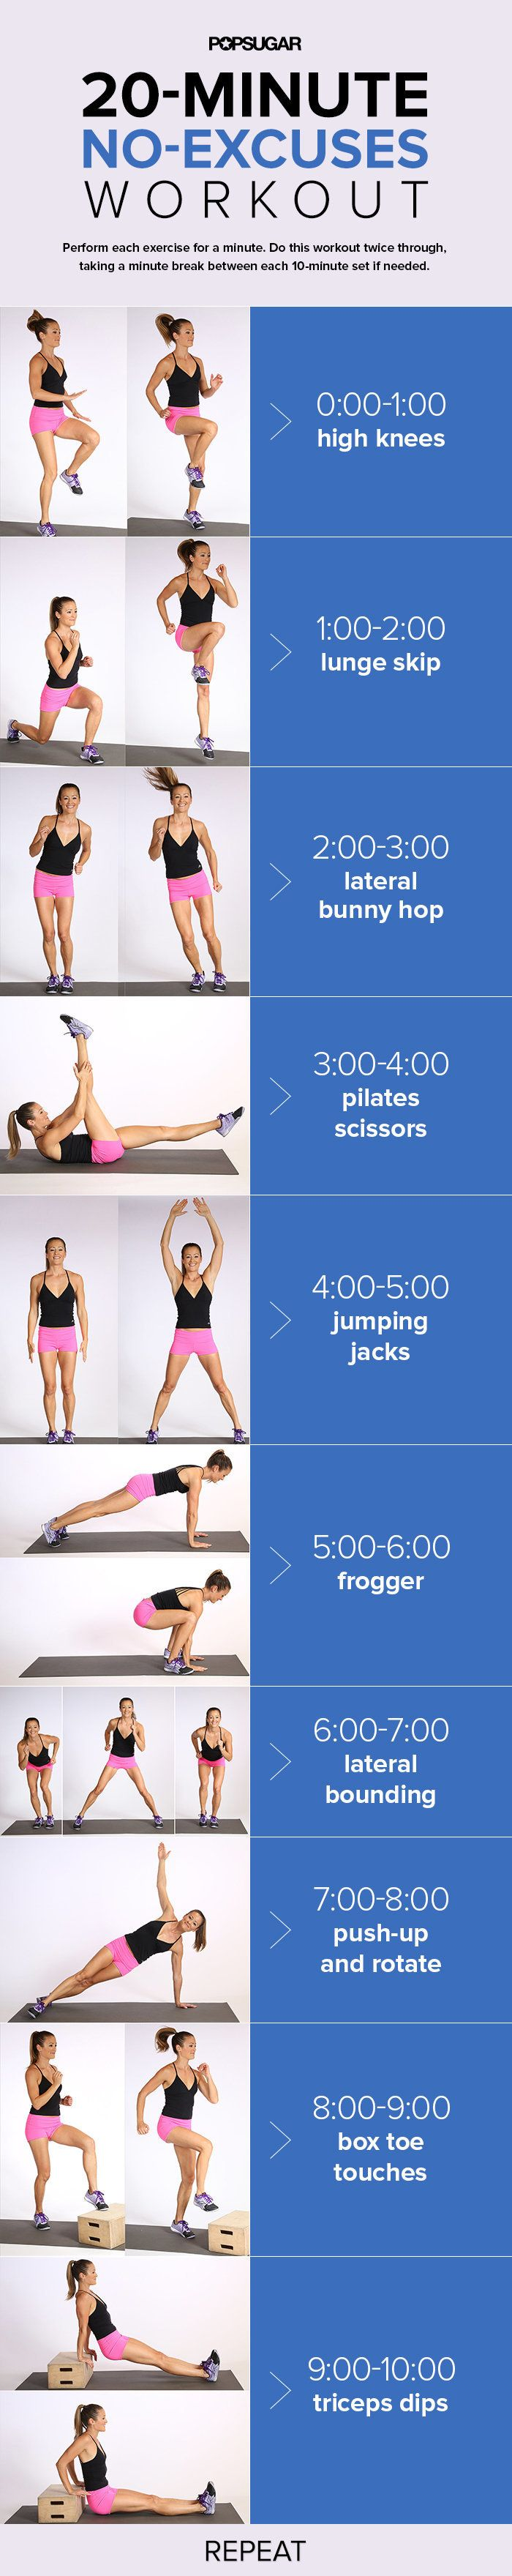 Best Pinterest Workout Posters | POPSUGAR Fitness